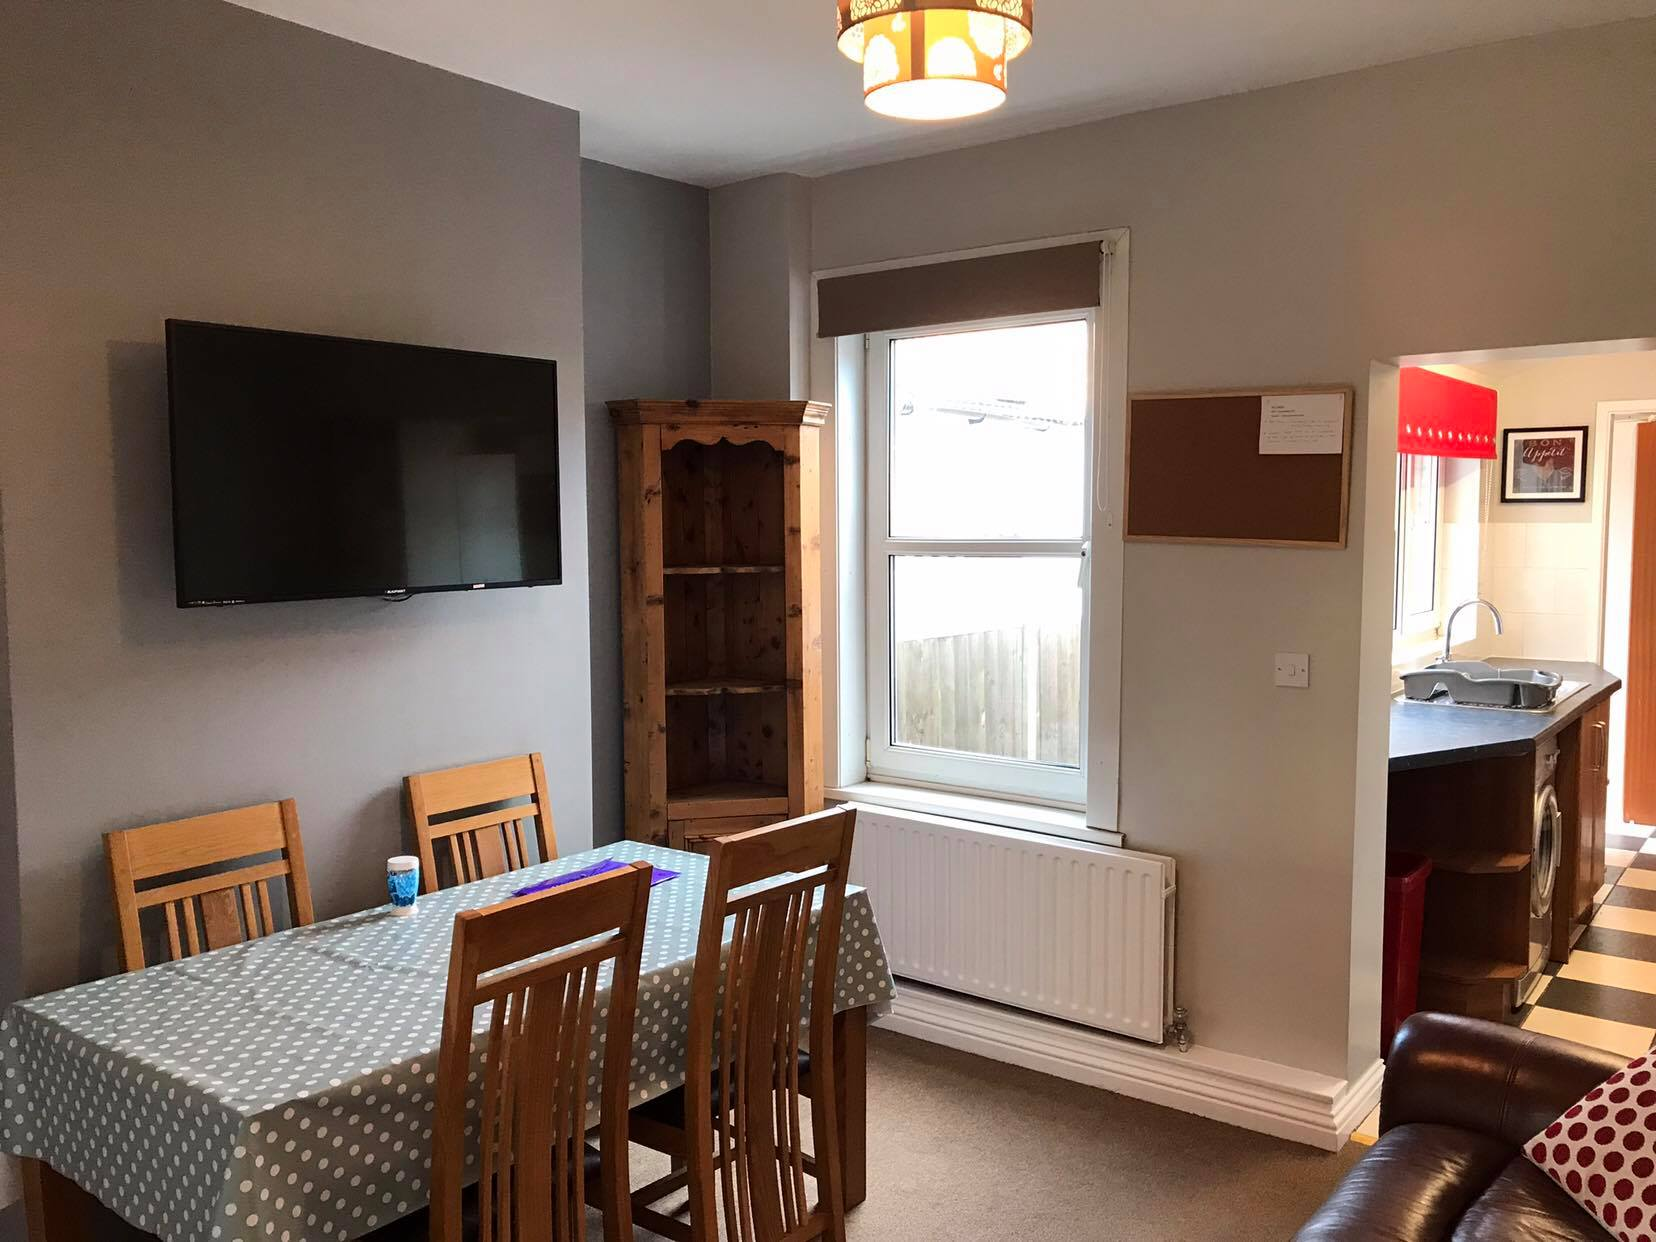 Harvey Street – 4 Bed (1 bed remaining)